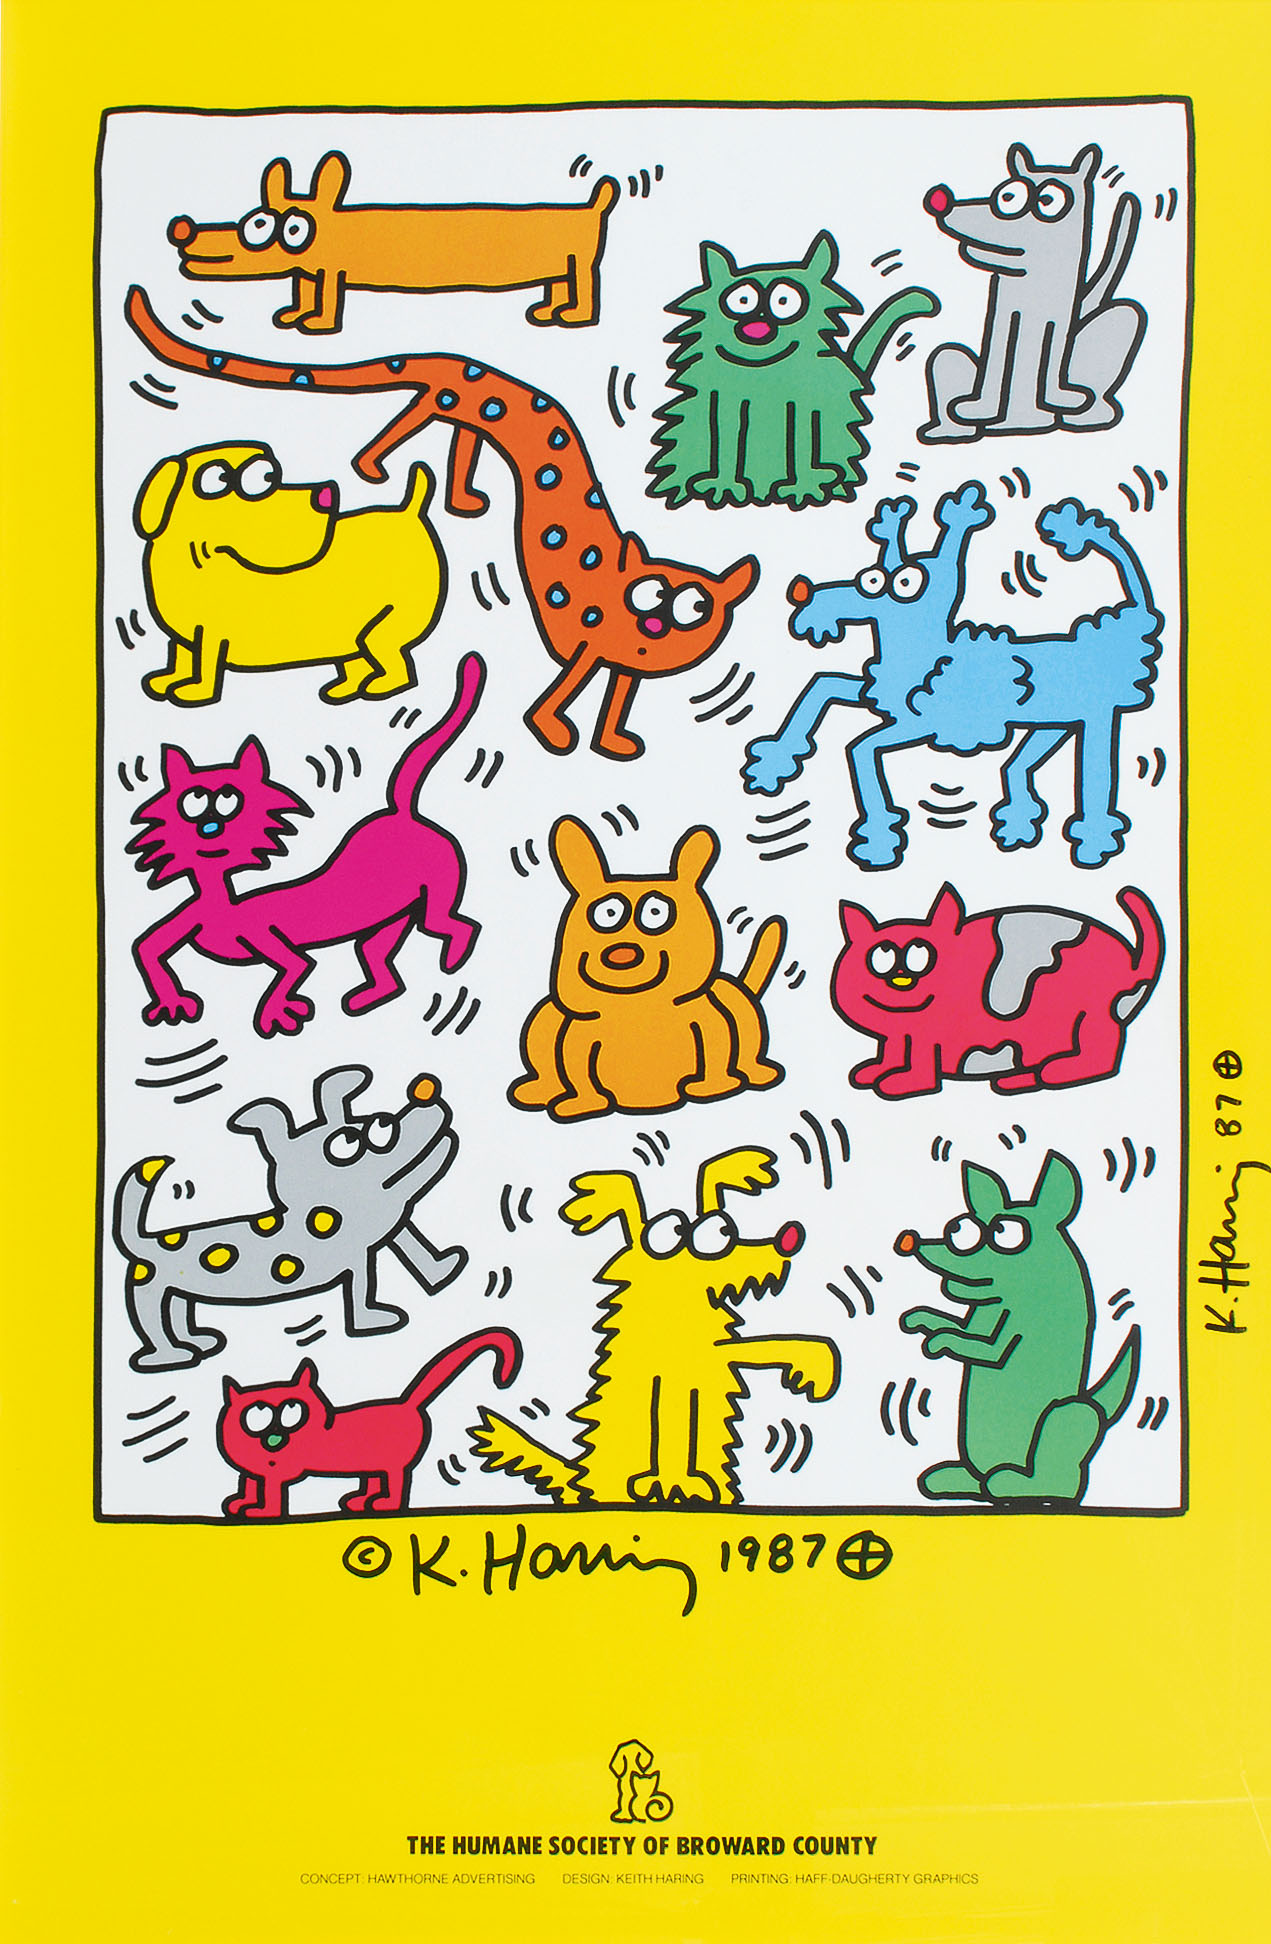 Handsigniertes Plakat: The Humane Society of Broward County 1987